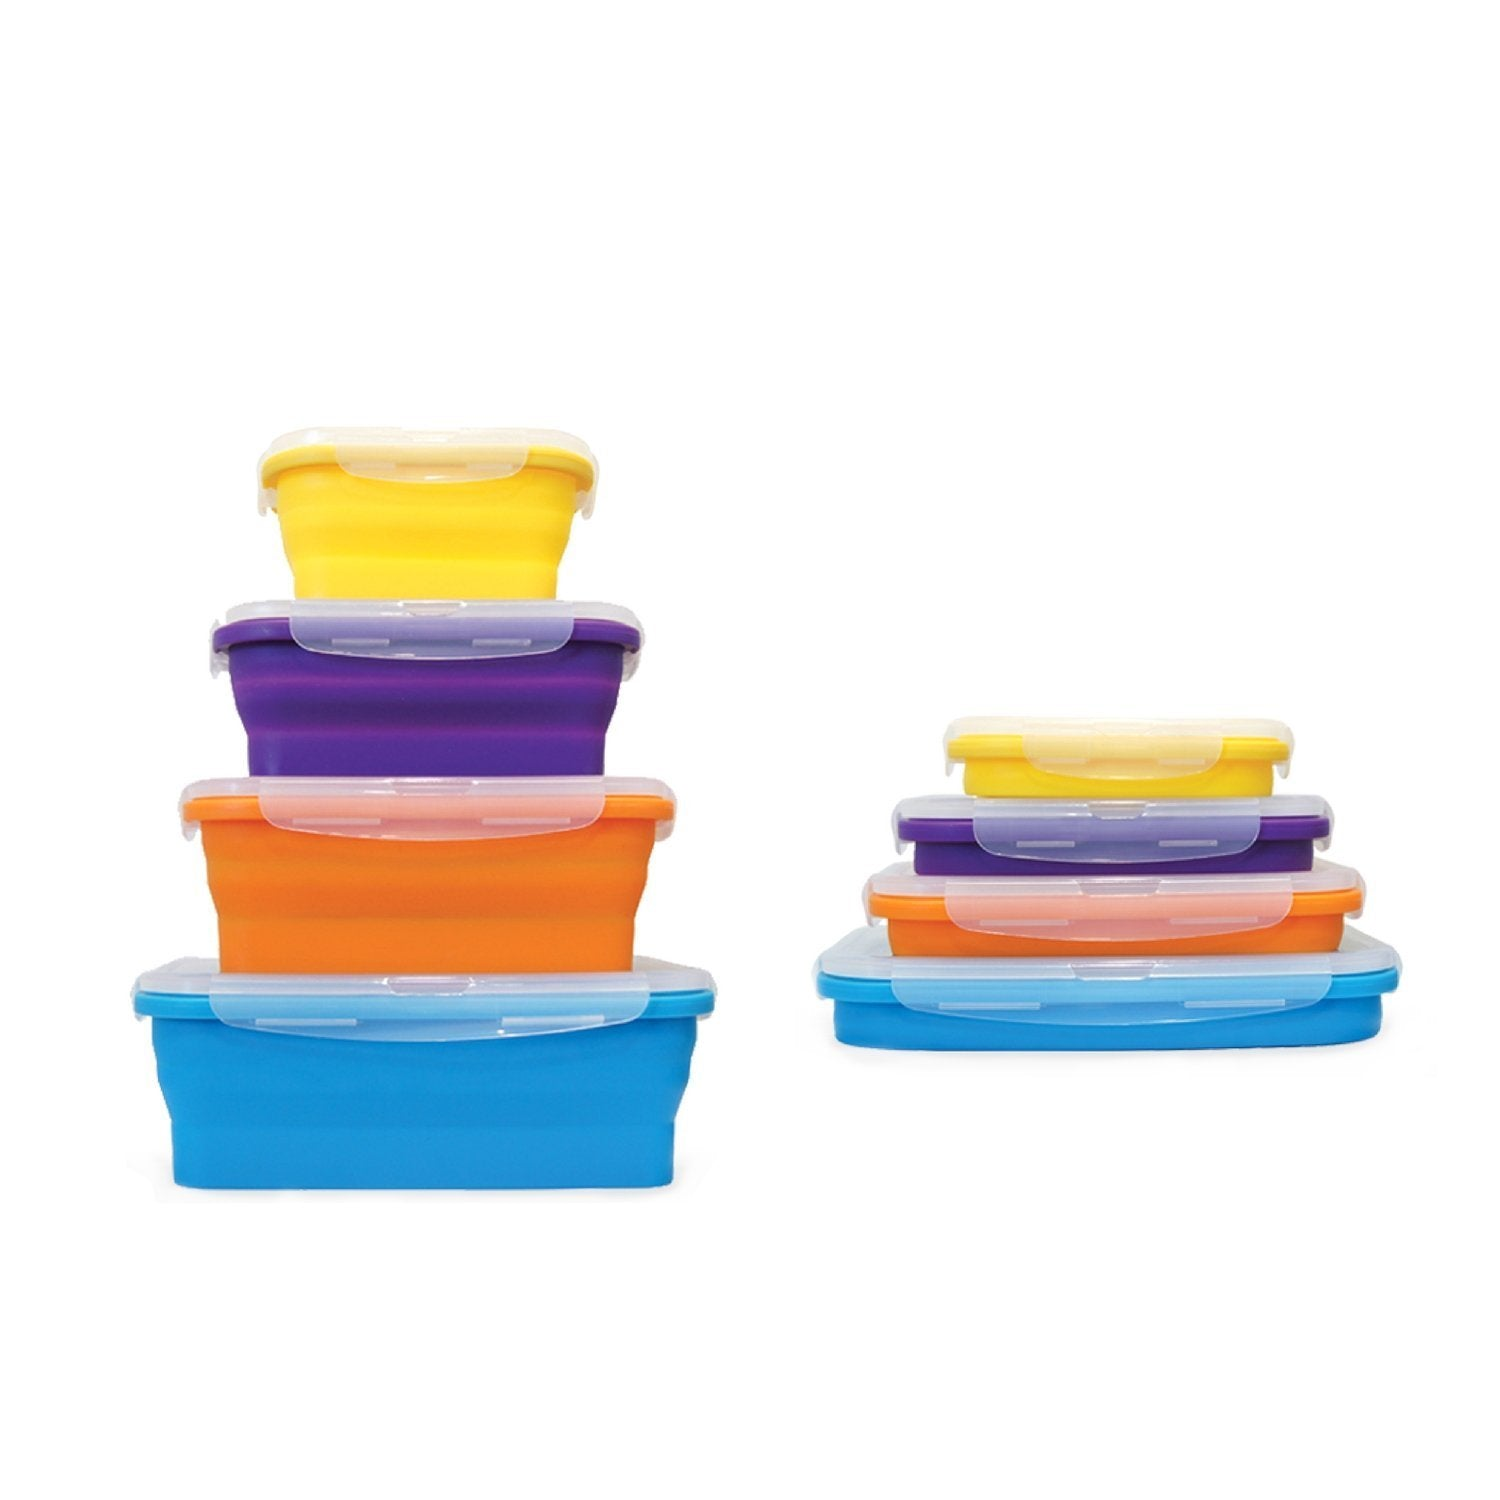 4 Piece Set of Environmentally Friendly Reusable Collapsible Microwave Safe Silicone Food Storage Lunch Box Kitchen Containers